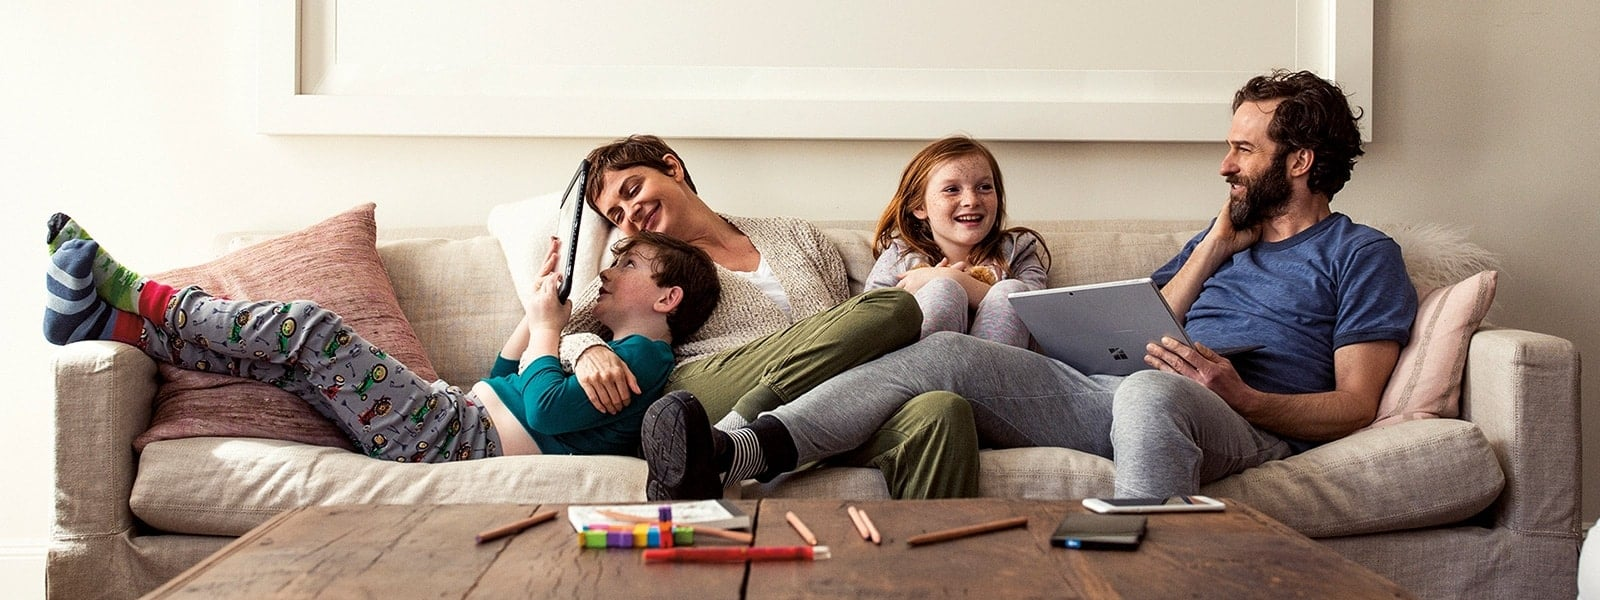 Family laying on couch